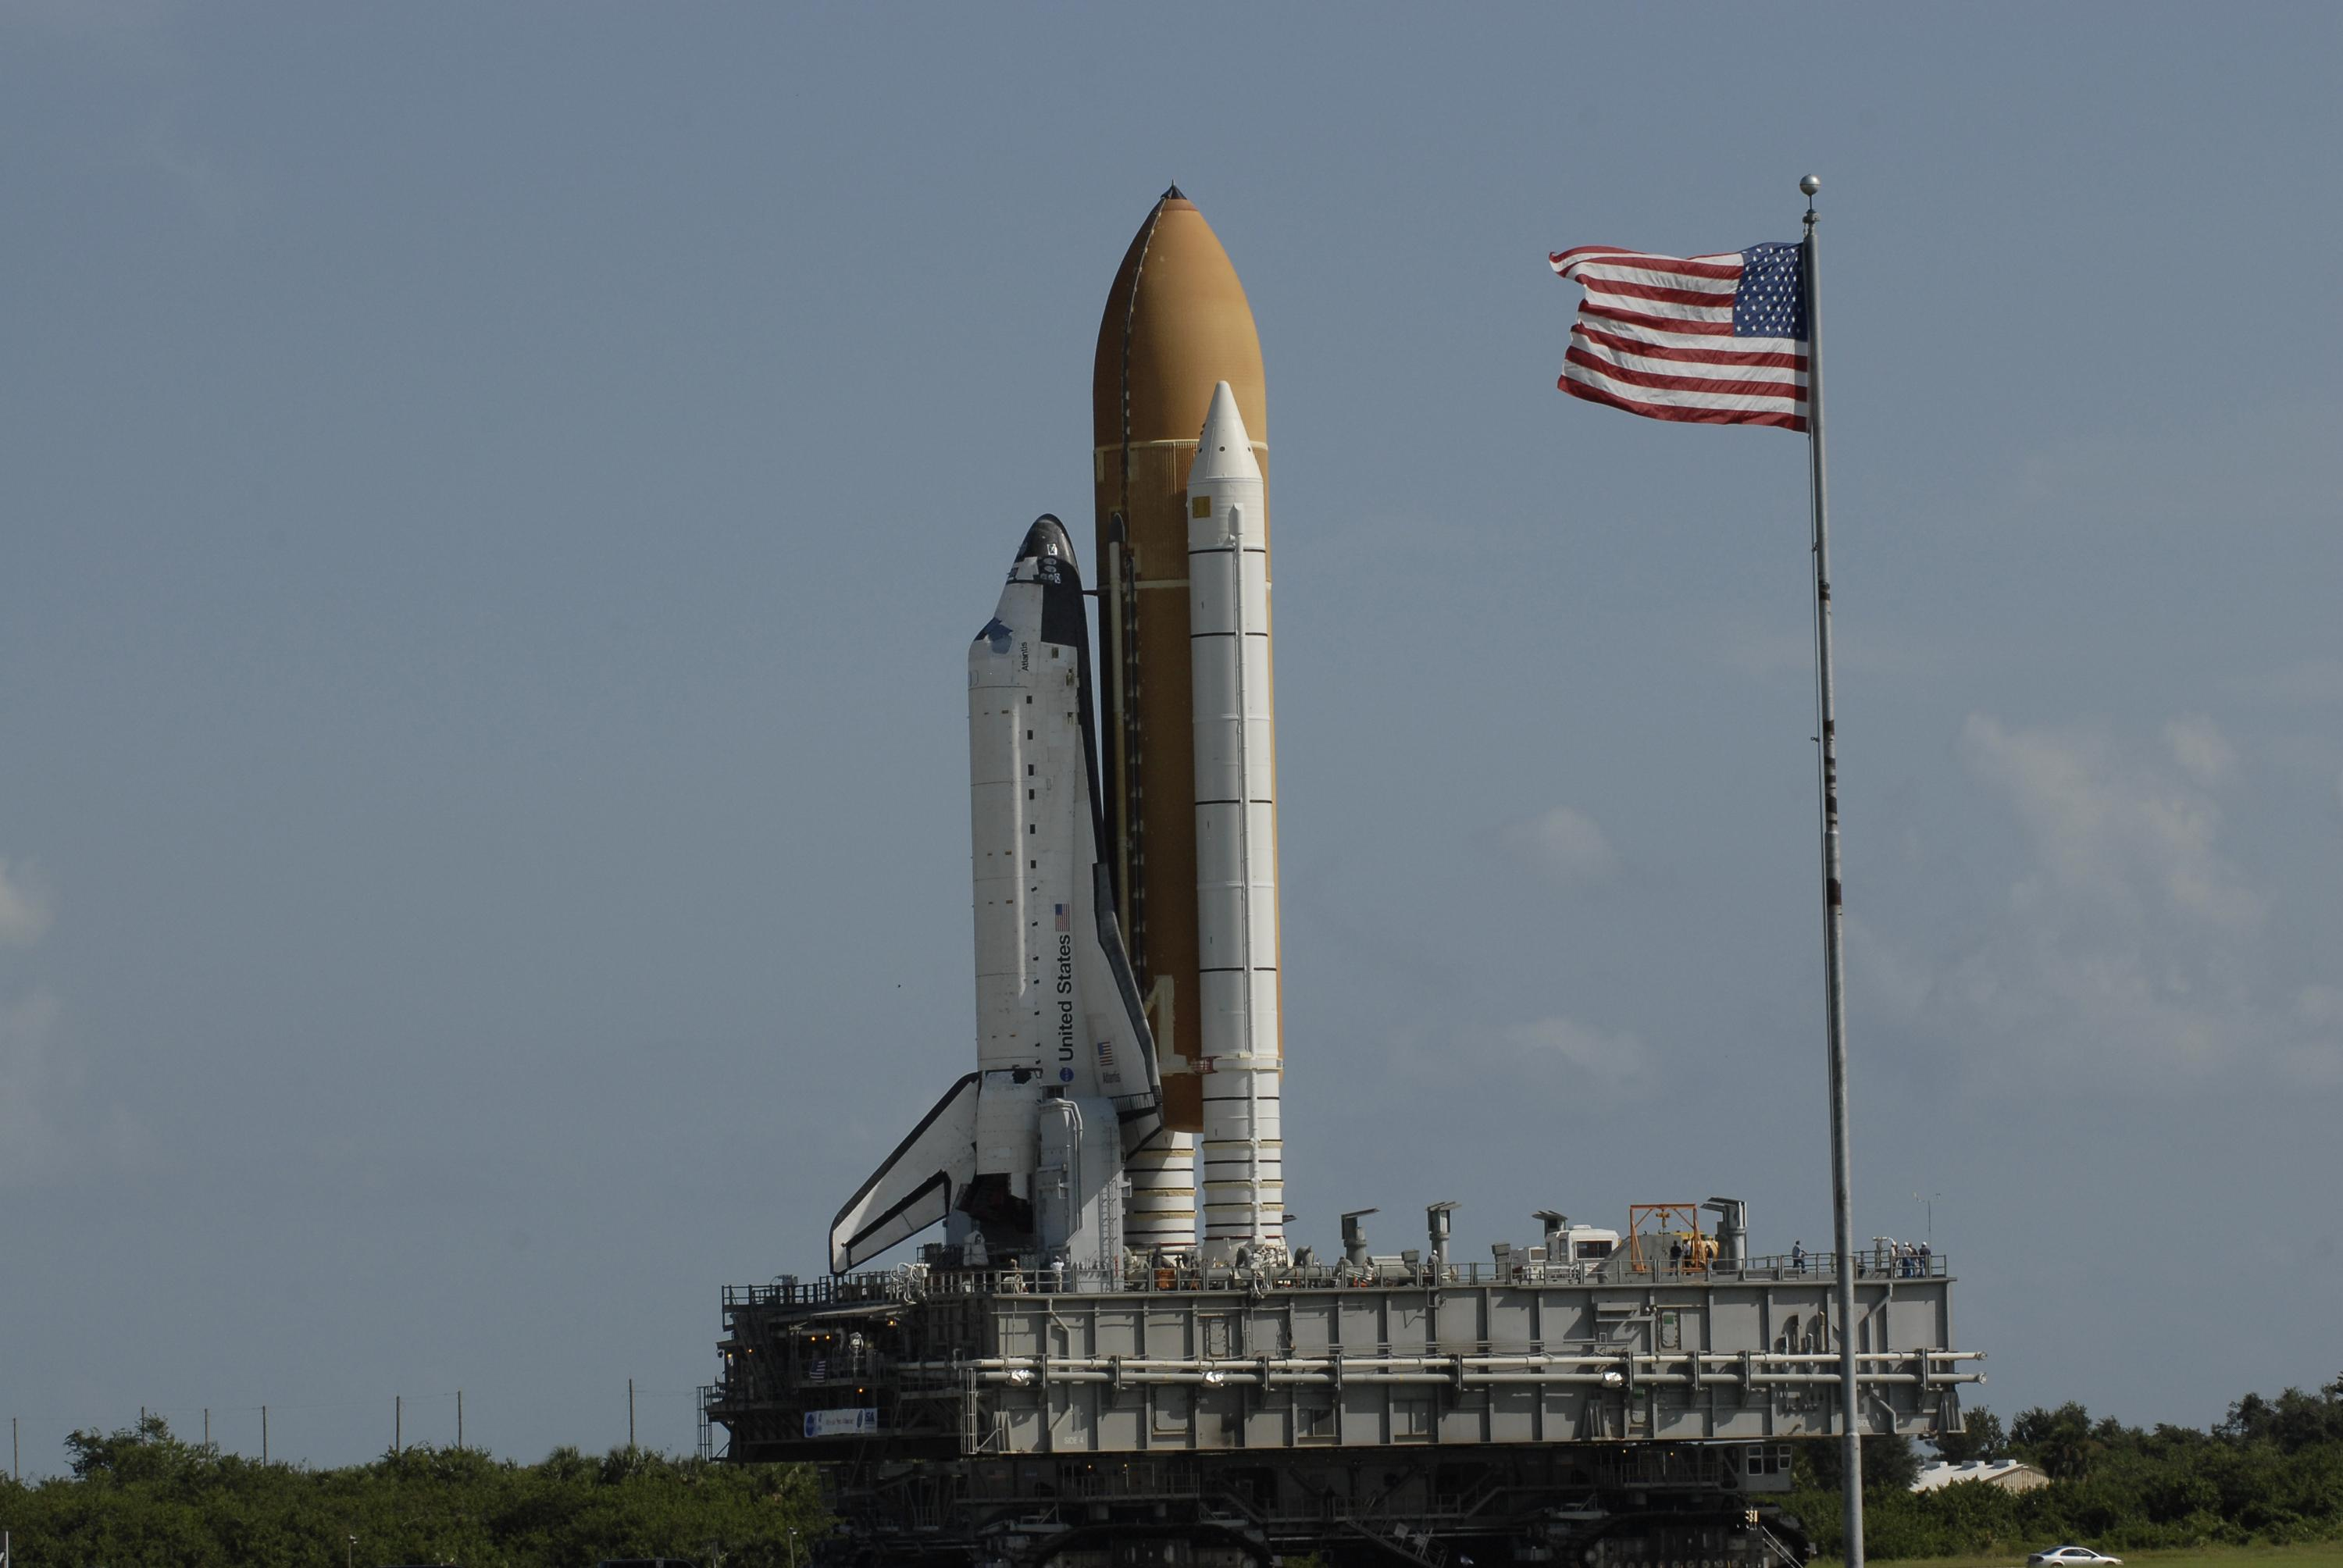 space shuttle on launchpad - photo #28